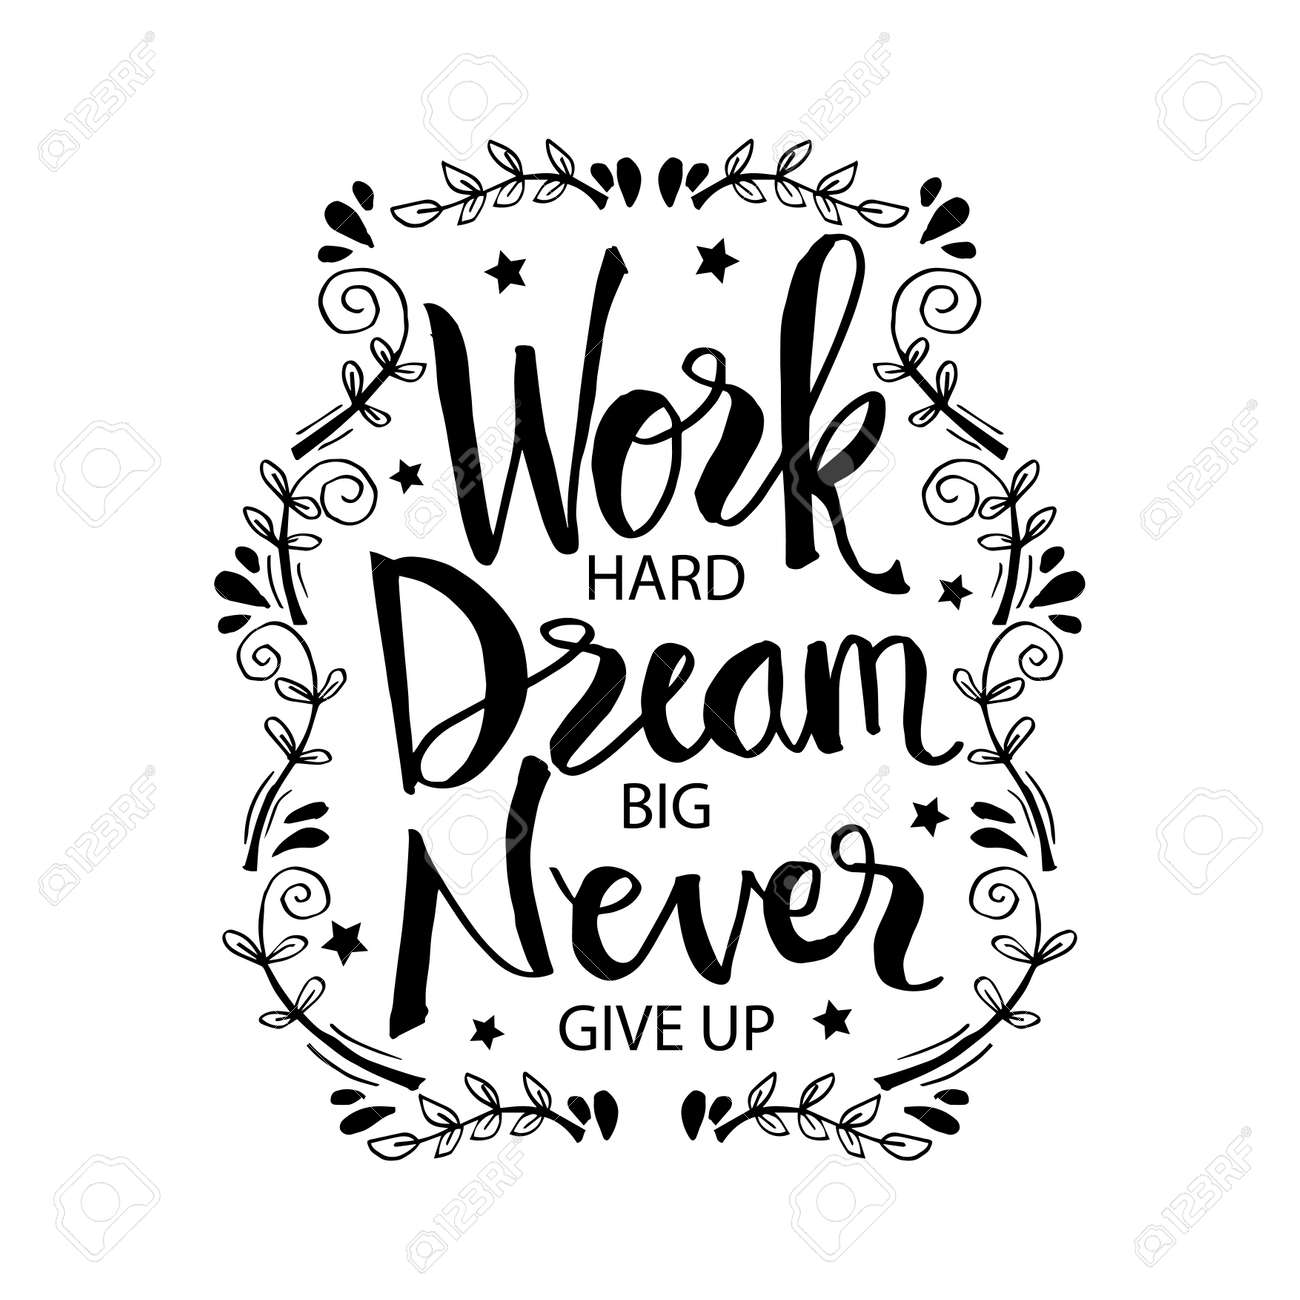 Work Hard Dream Big And Never Give Up Motivational Quote Royalty